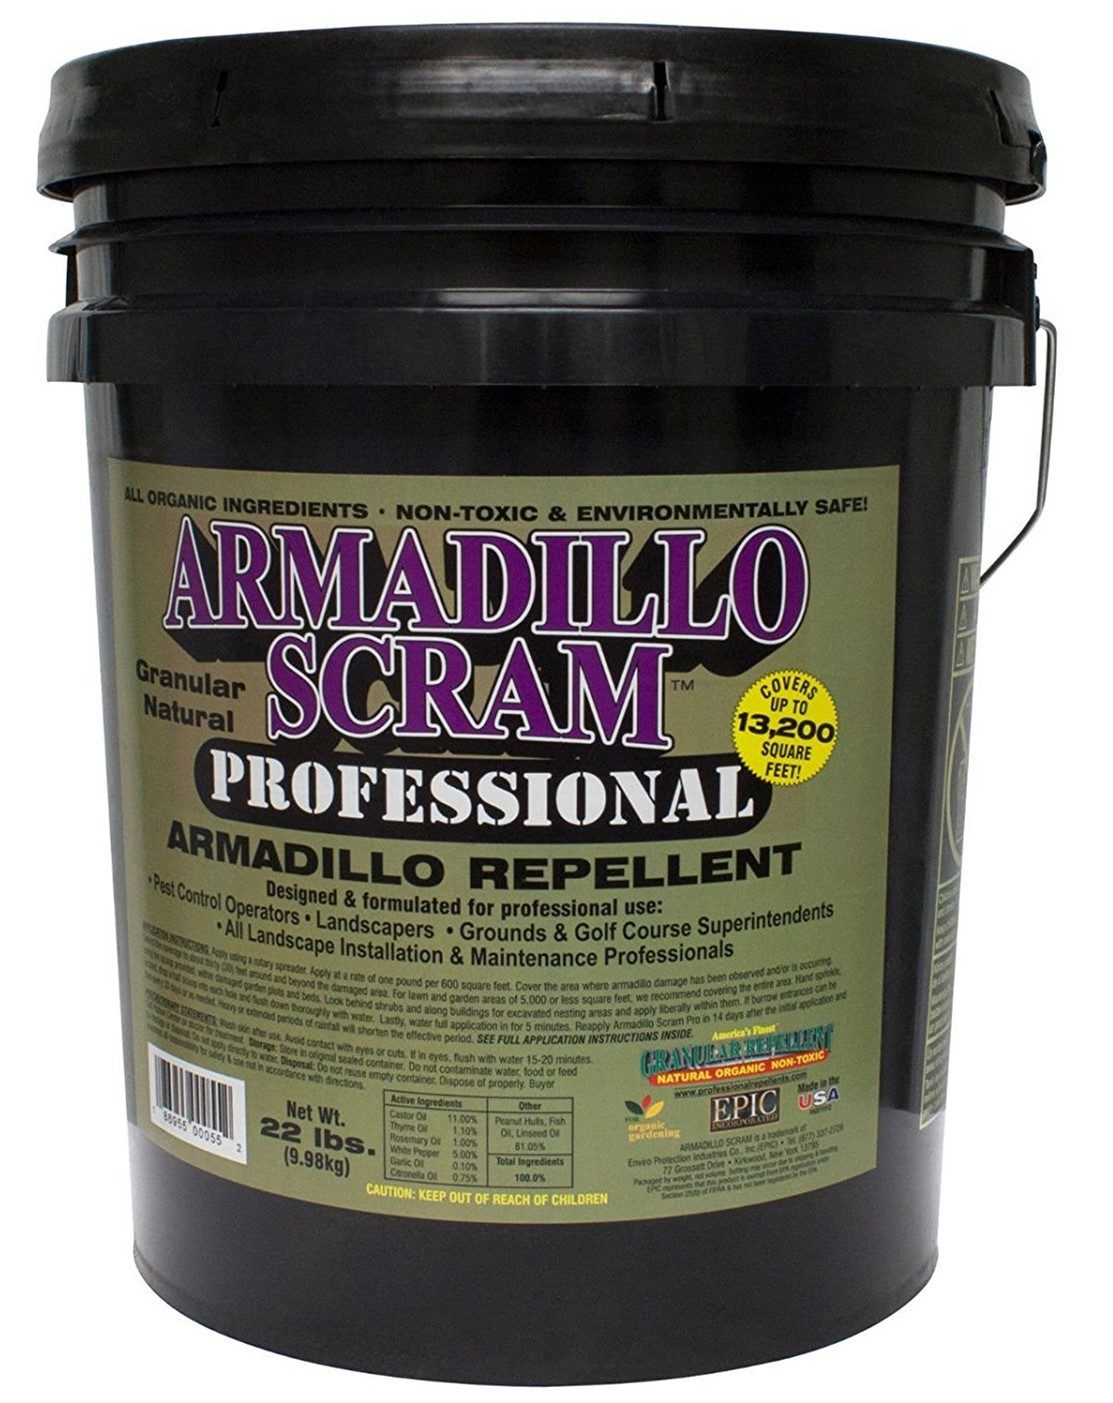 Outstanding This is quite similar to the previous product except that the natural properties are a little different. It does a great job in handling armadillos and chasing them away quickly. The only thing you need to be wary of is the potential chemical substances that are present in the product.